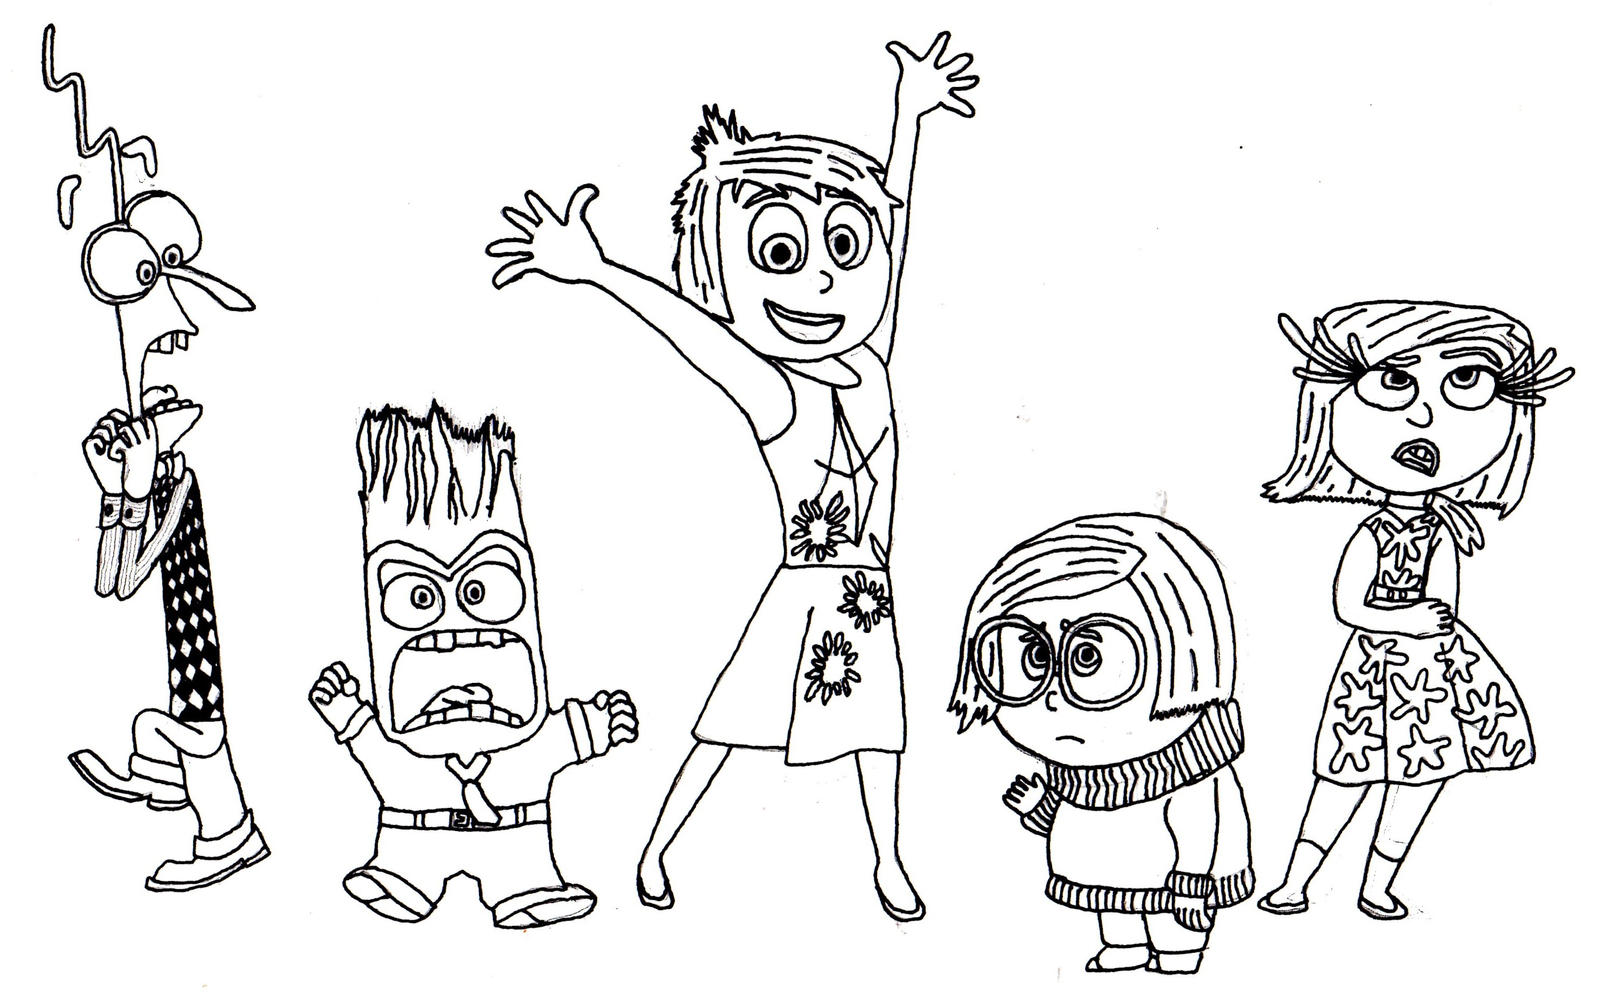 Inside out fanart sketch by jackhammer86 on deviantart for Inside out coloring pages